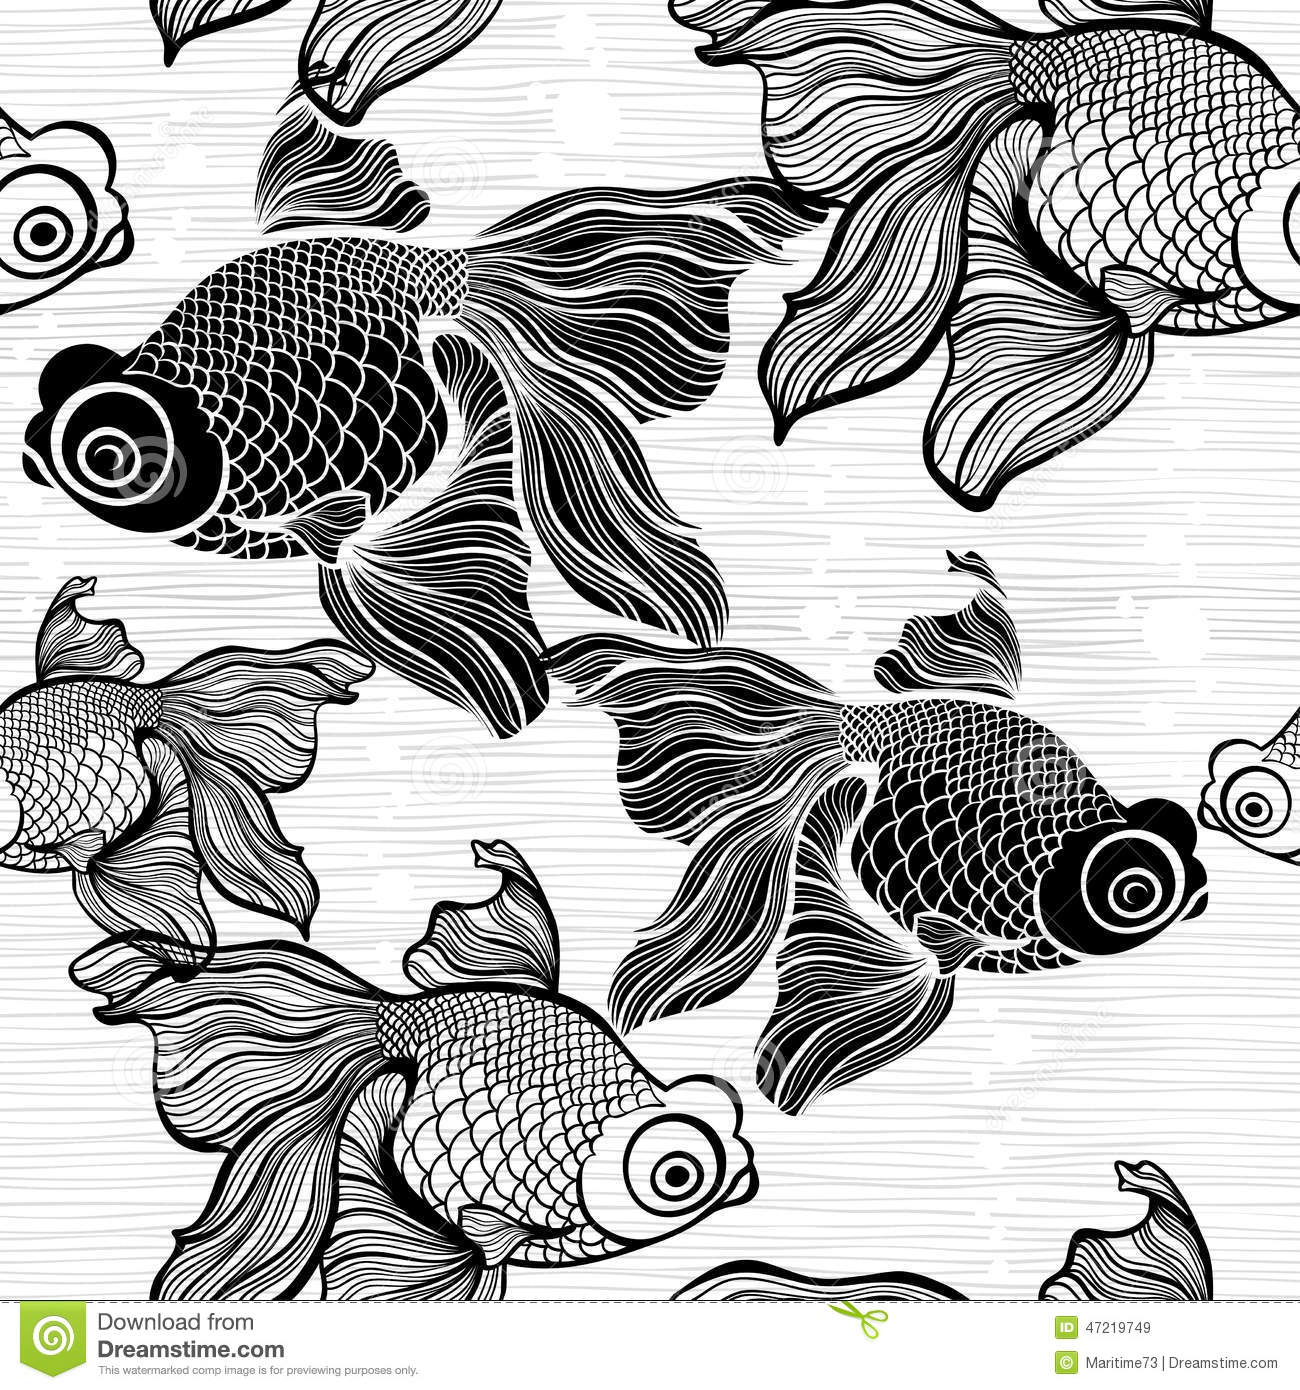 White And Black Illustration: Monochrome Seamless Pattern With Fish. Black And White Il